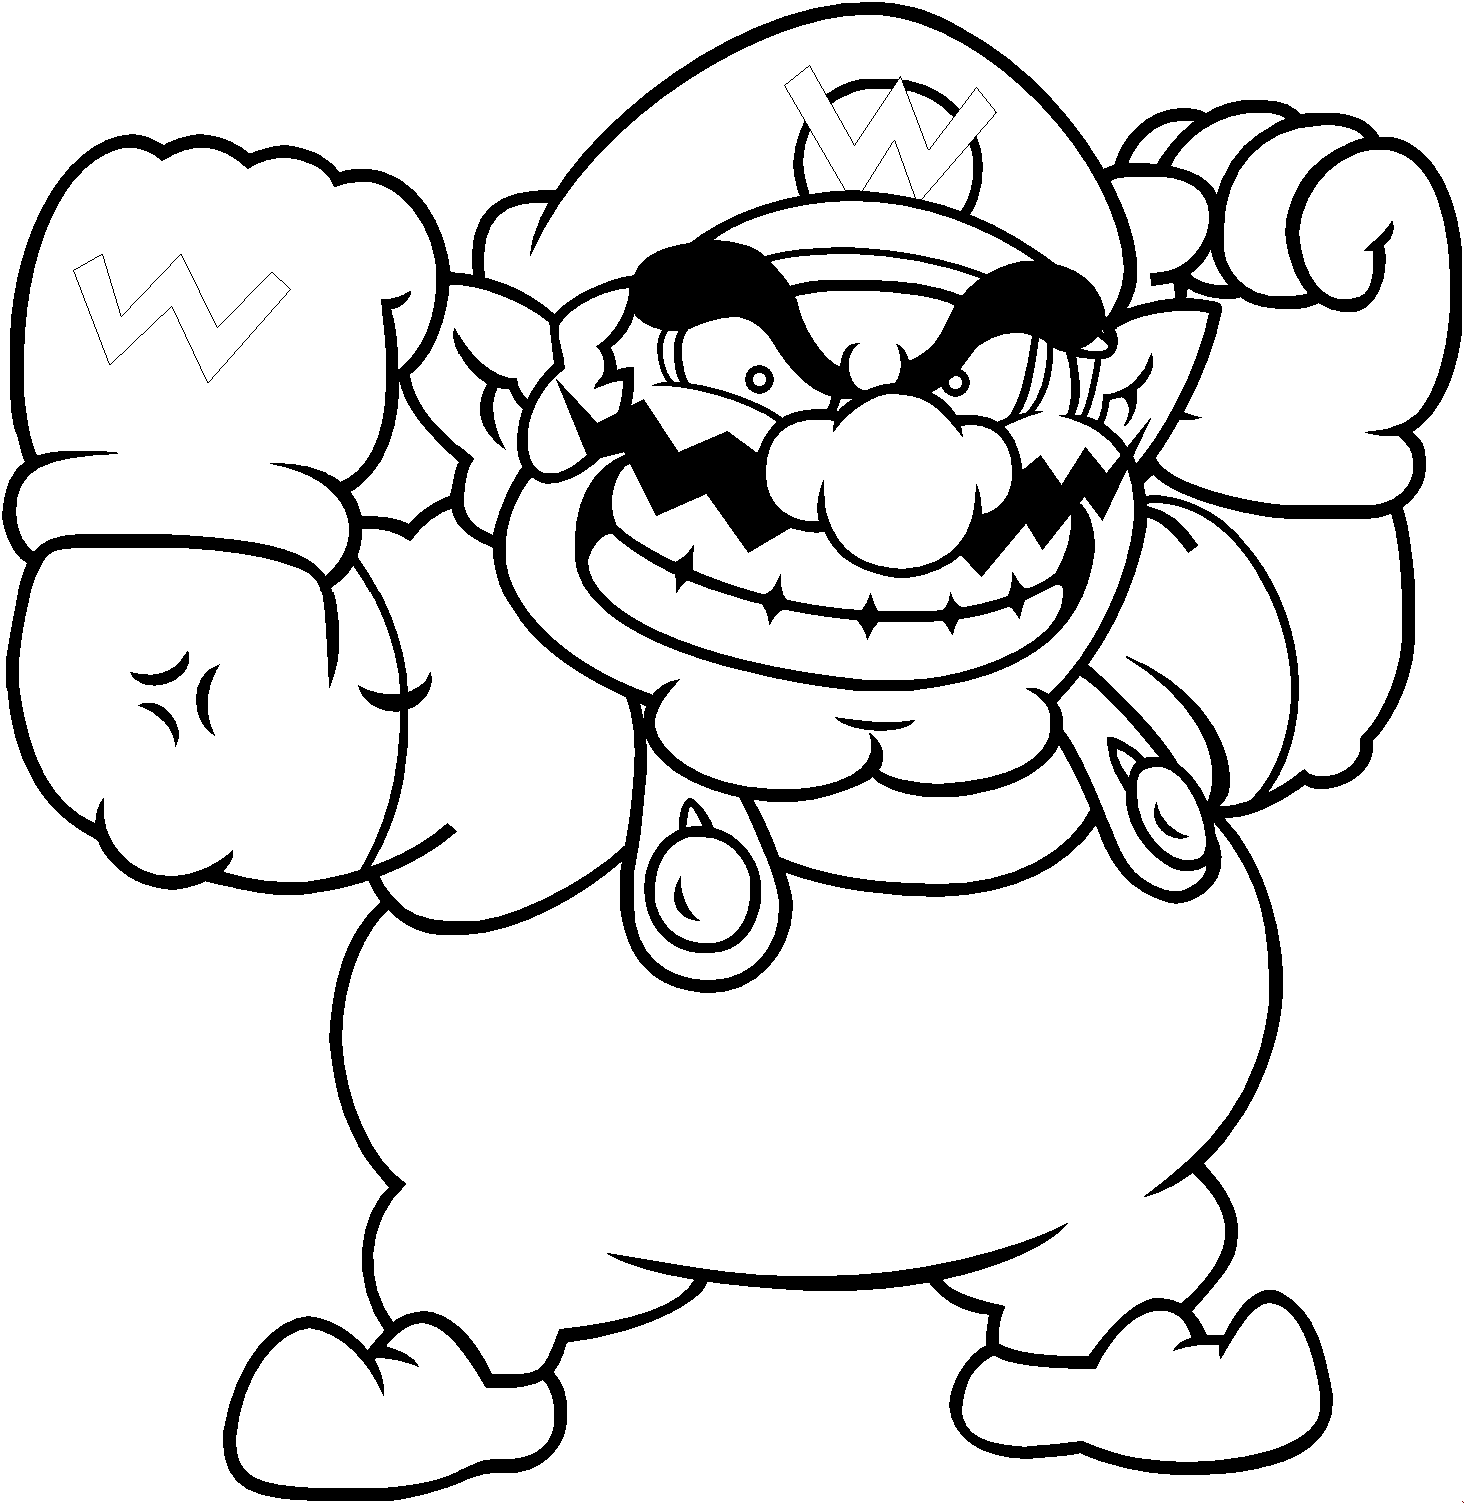 wario coloring pages - photo#1